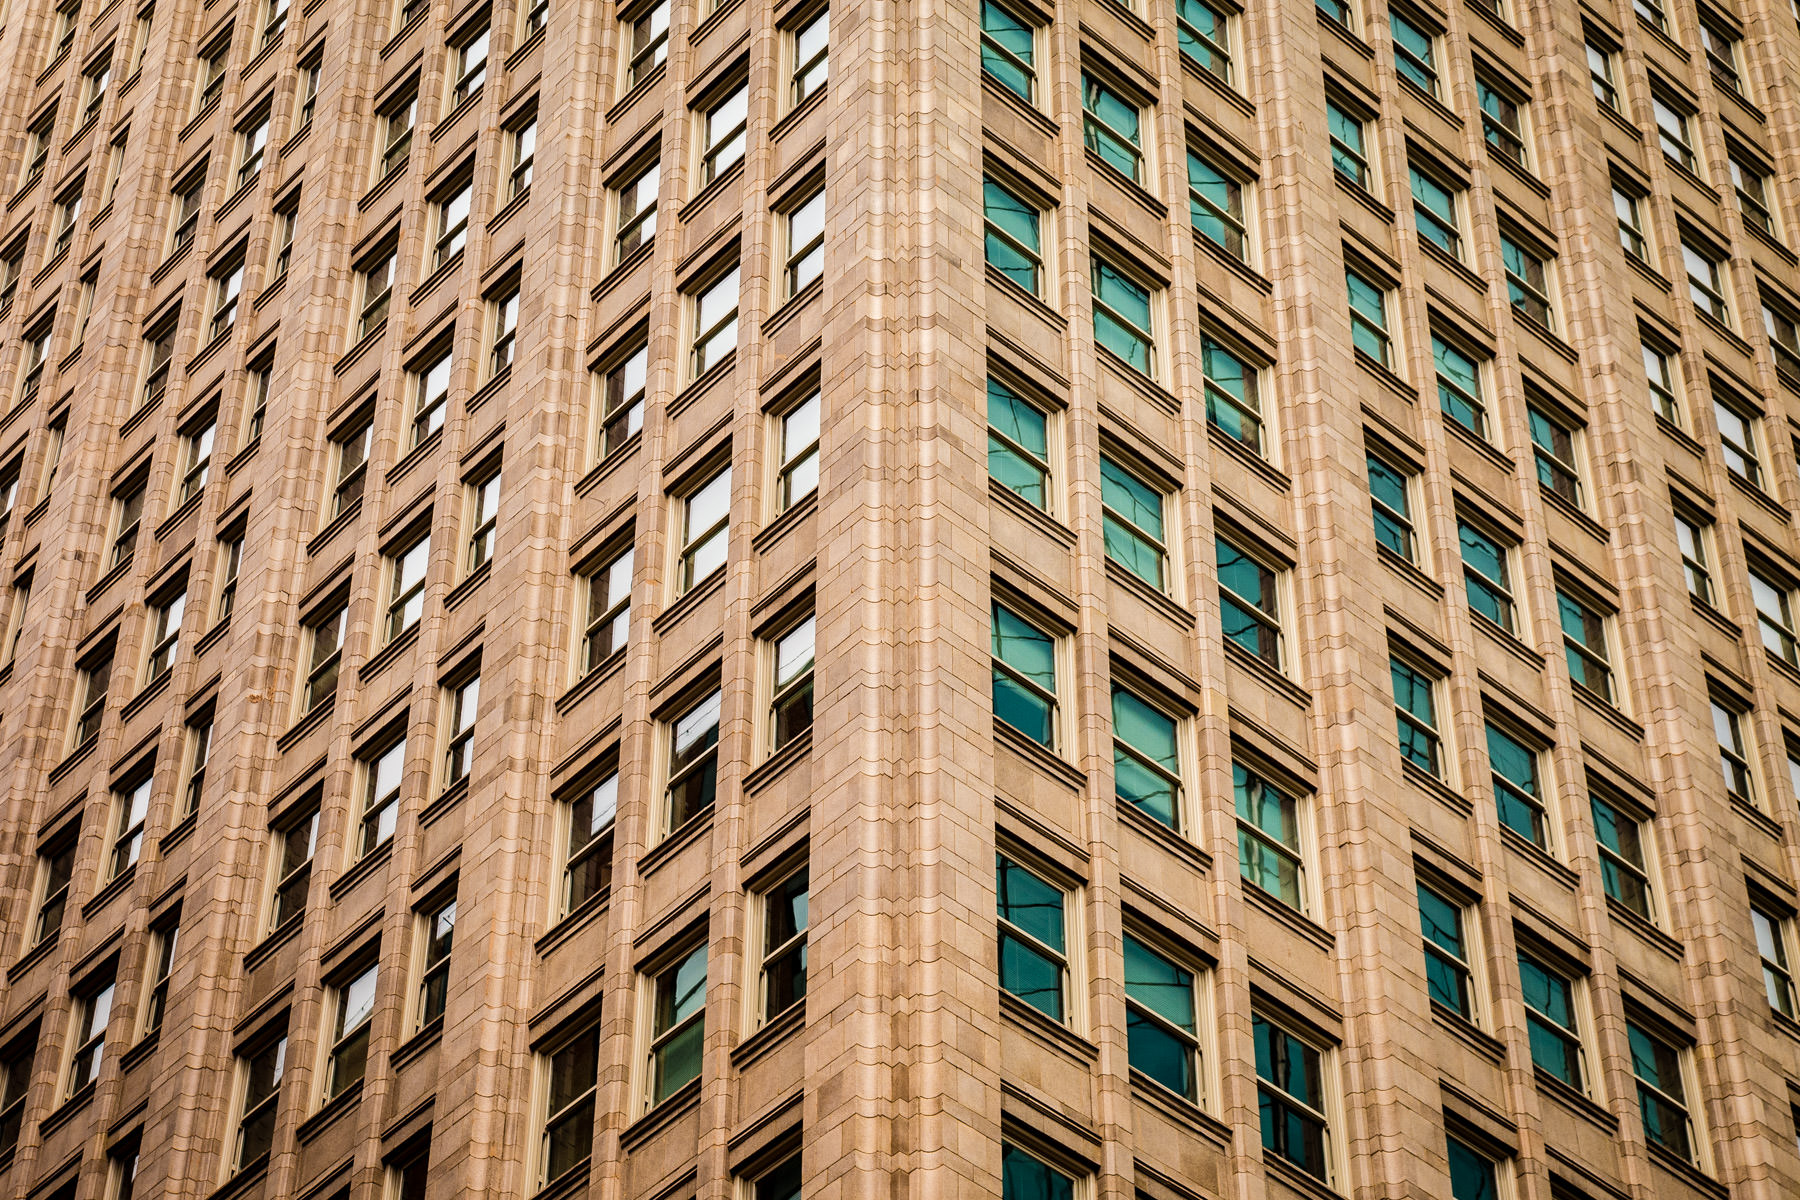 Architectural detail of Downtown Fort Worth, Texas' 714 Main, built in 1920 and restored in 2010.